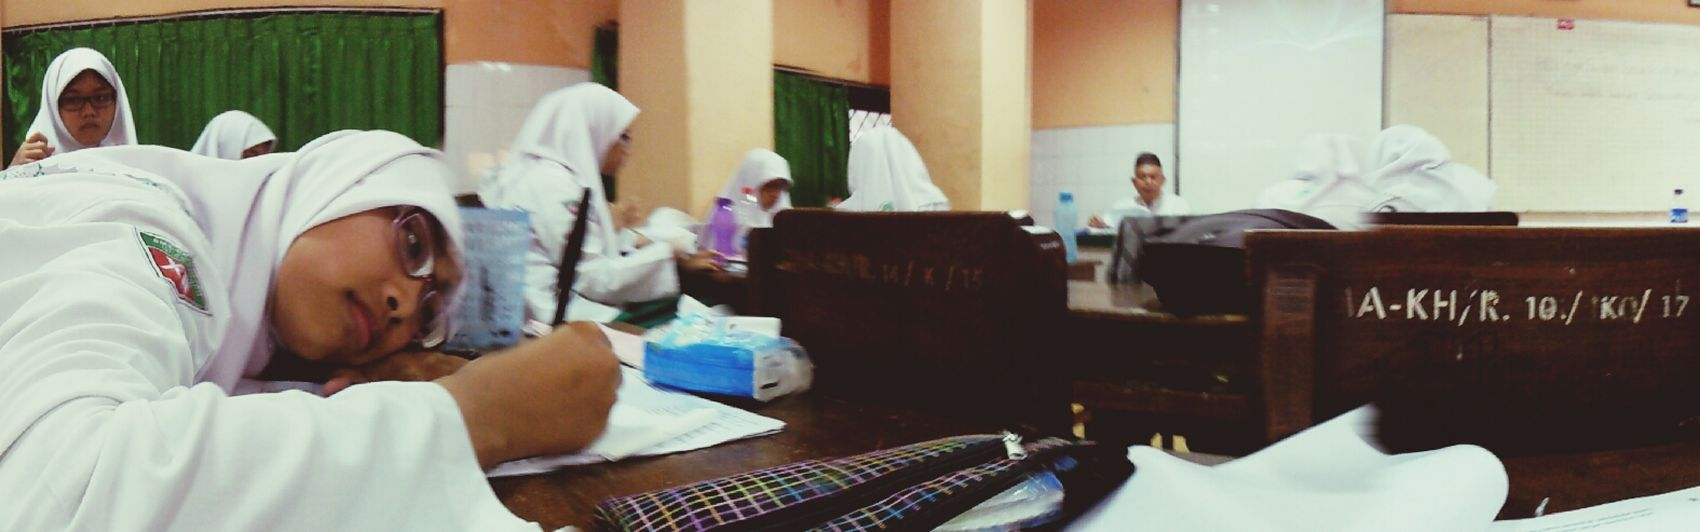 Situation of my classroom when we learned about history lesson.. My Classroom!! Hi!